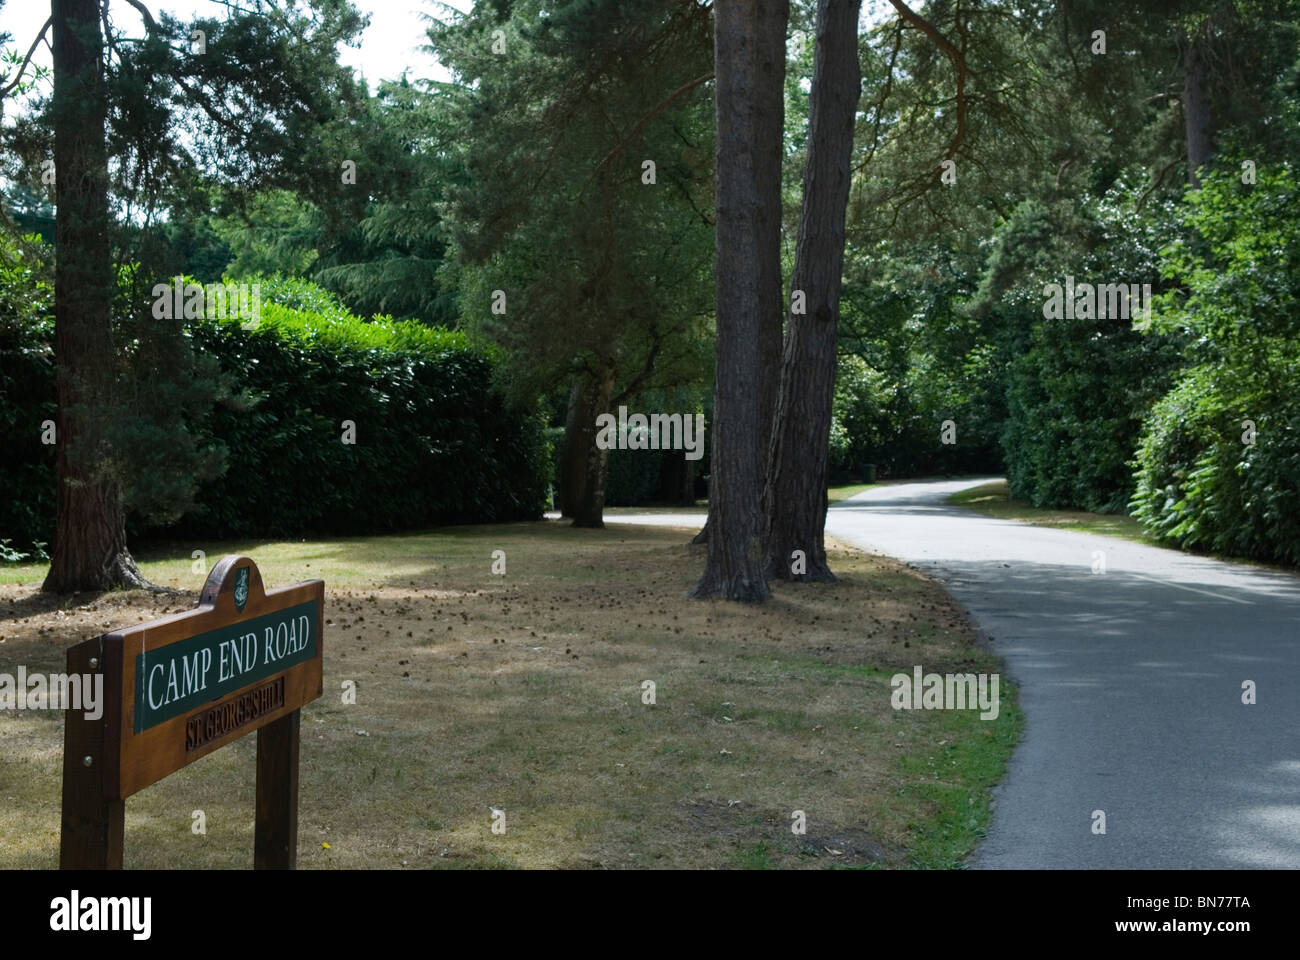 St Georges Hill. Camp End Road where the Diggers in 1649 formed community  now an exclusive private estate HOMER - Stock Image